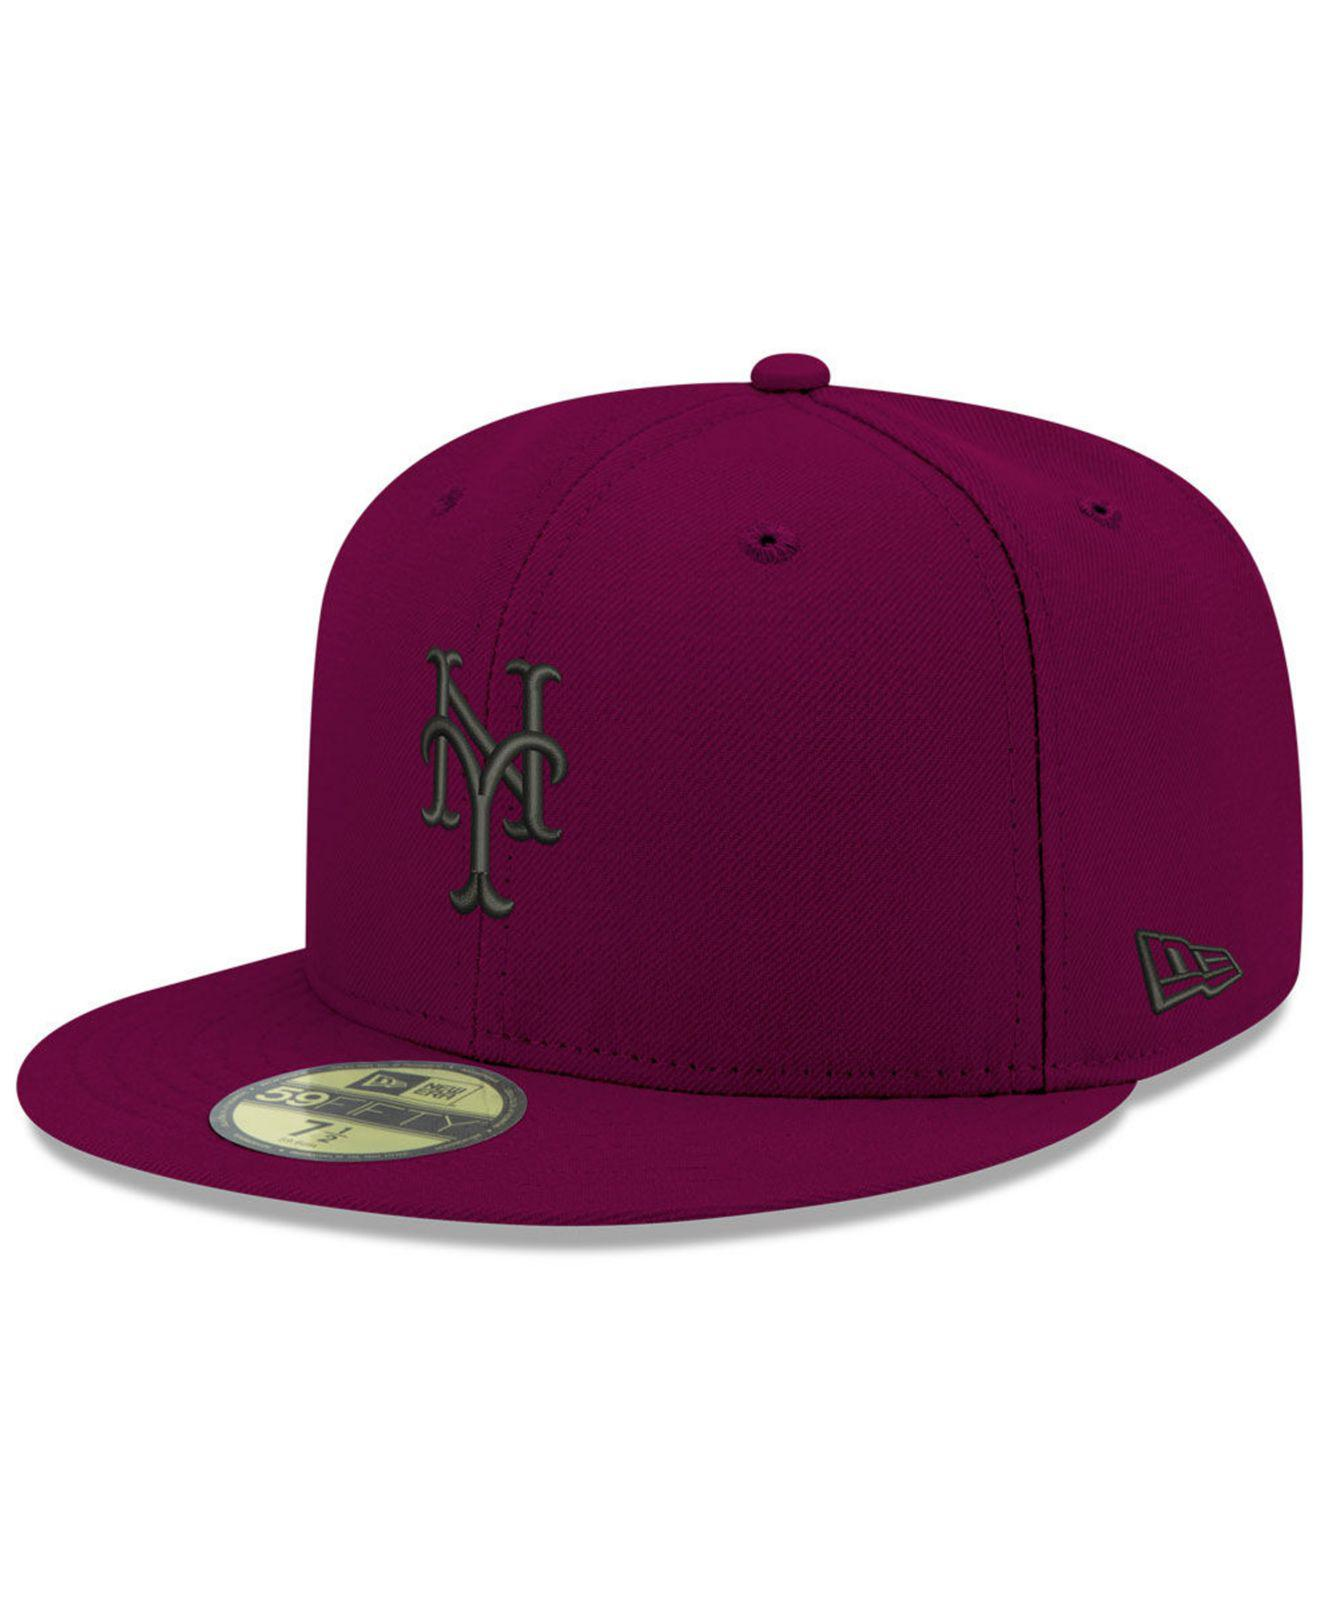 Lyst - KTZ New York Mets Reverse C-dub 59fifty Fitted Cap in Purple ... 8afcc50a9198